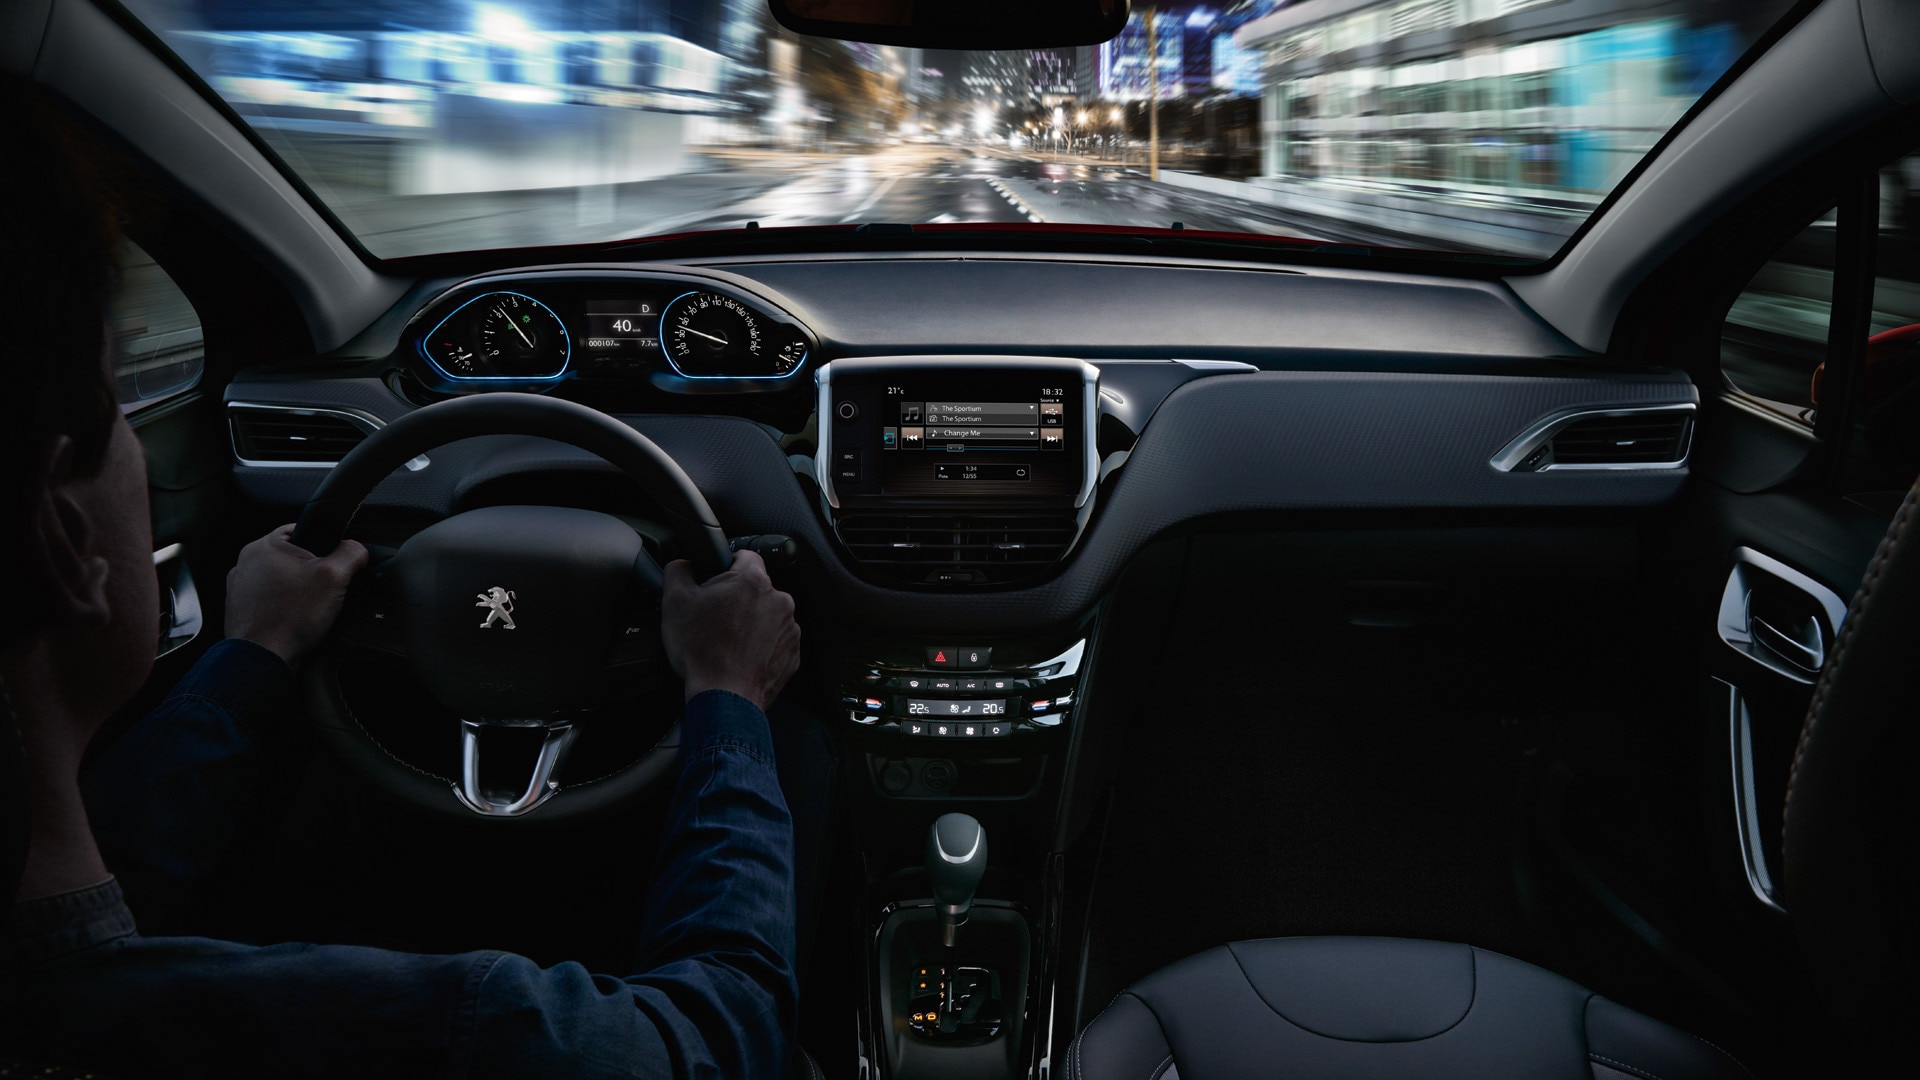 2014 Range Rover Interior >> PEUGEOT 2008 New Car Showroom | SUV | Test Drive Today